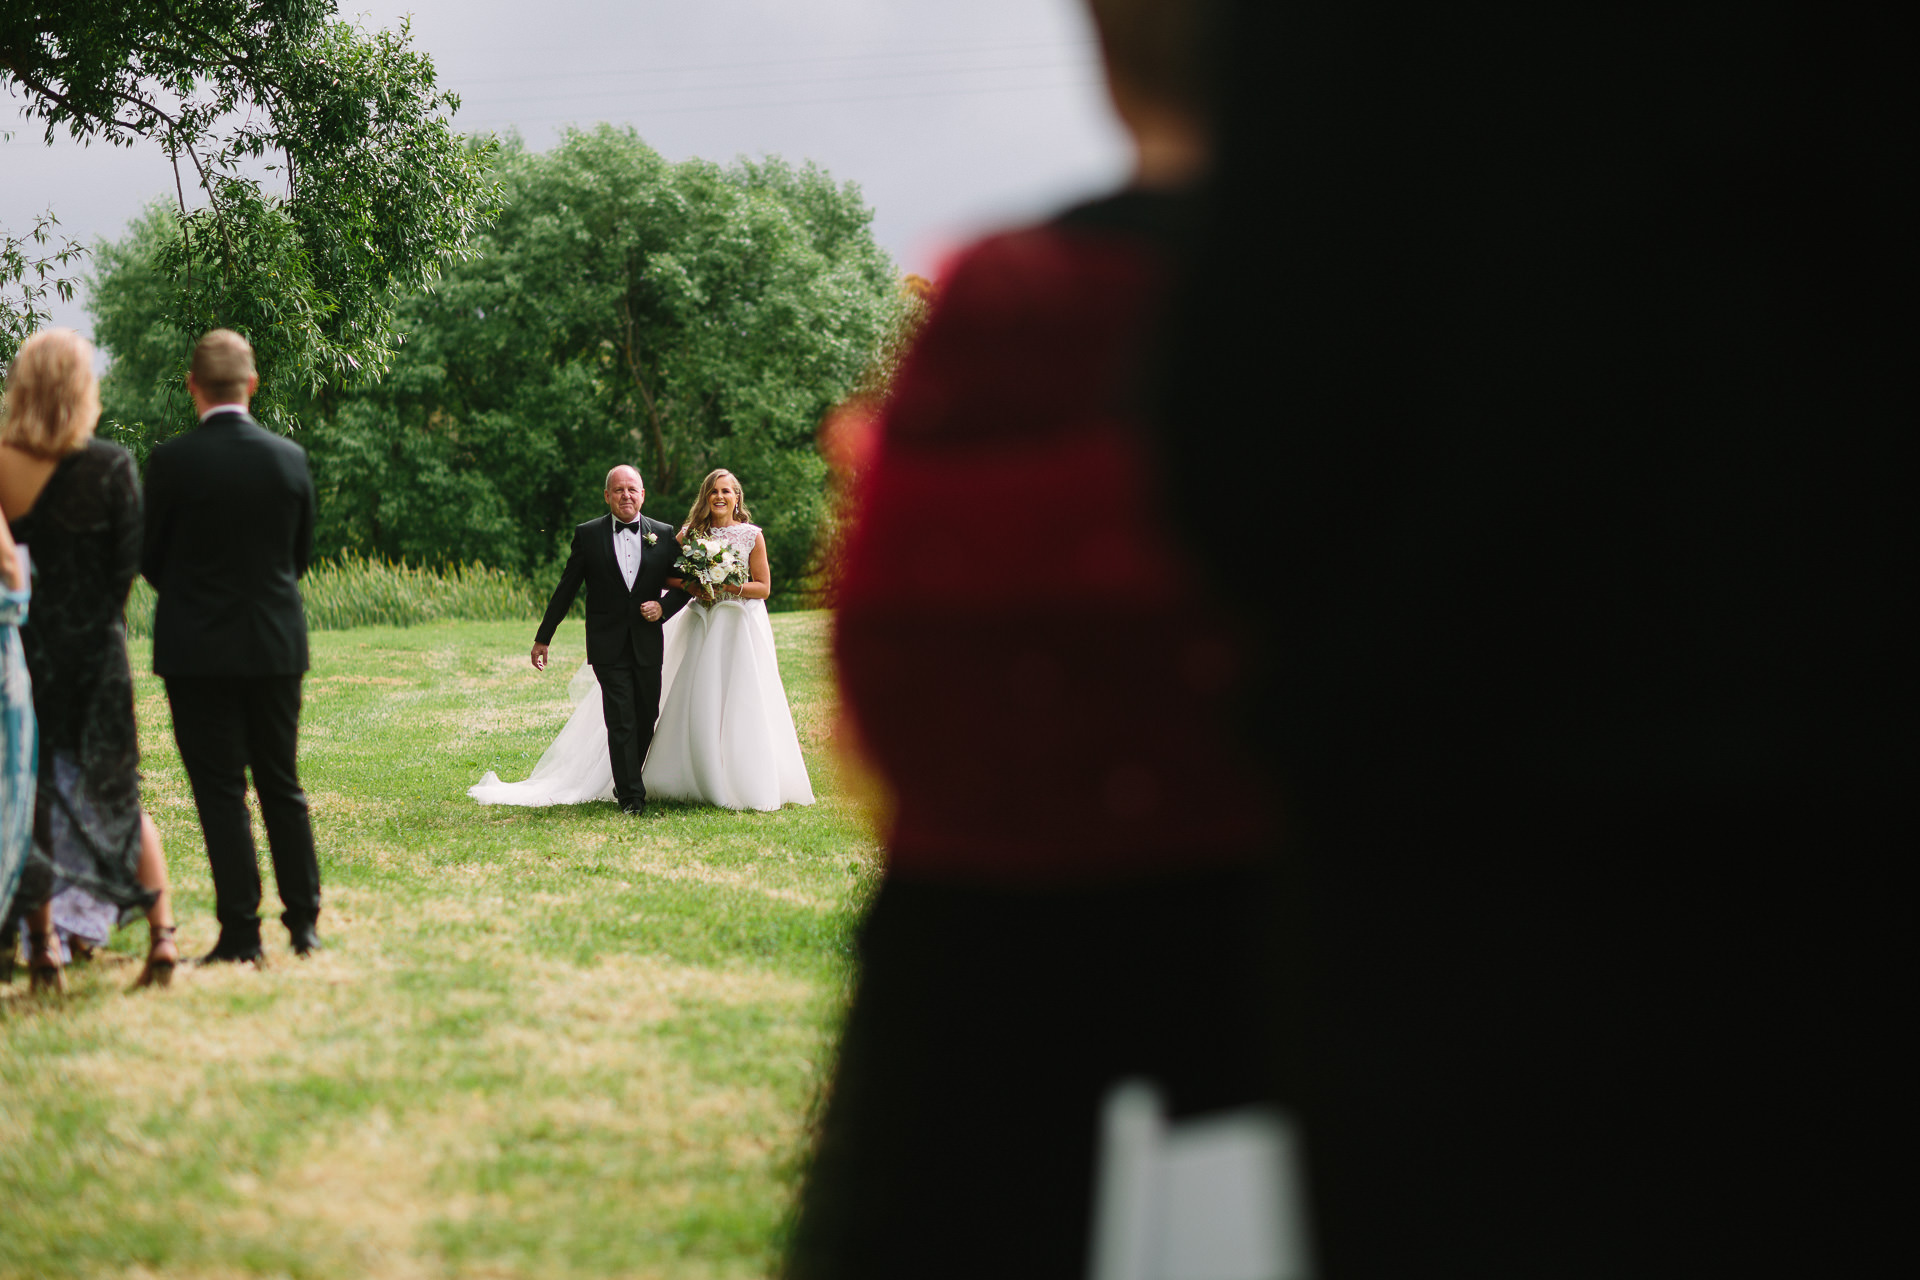 father and bride walk down aisle at Bolt Hoban estate in a garden ceremony